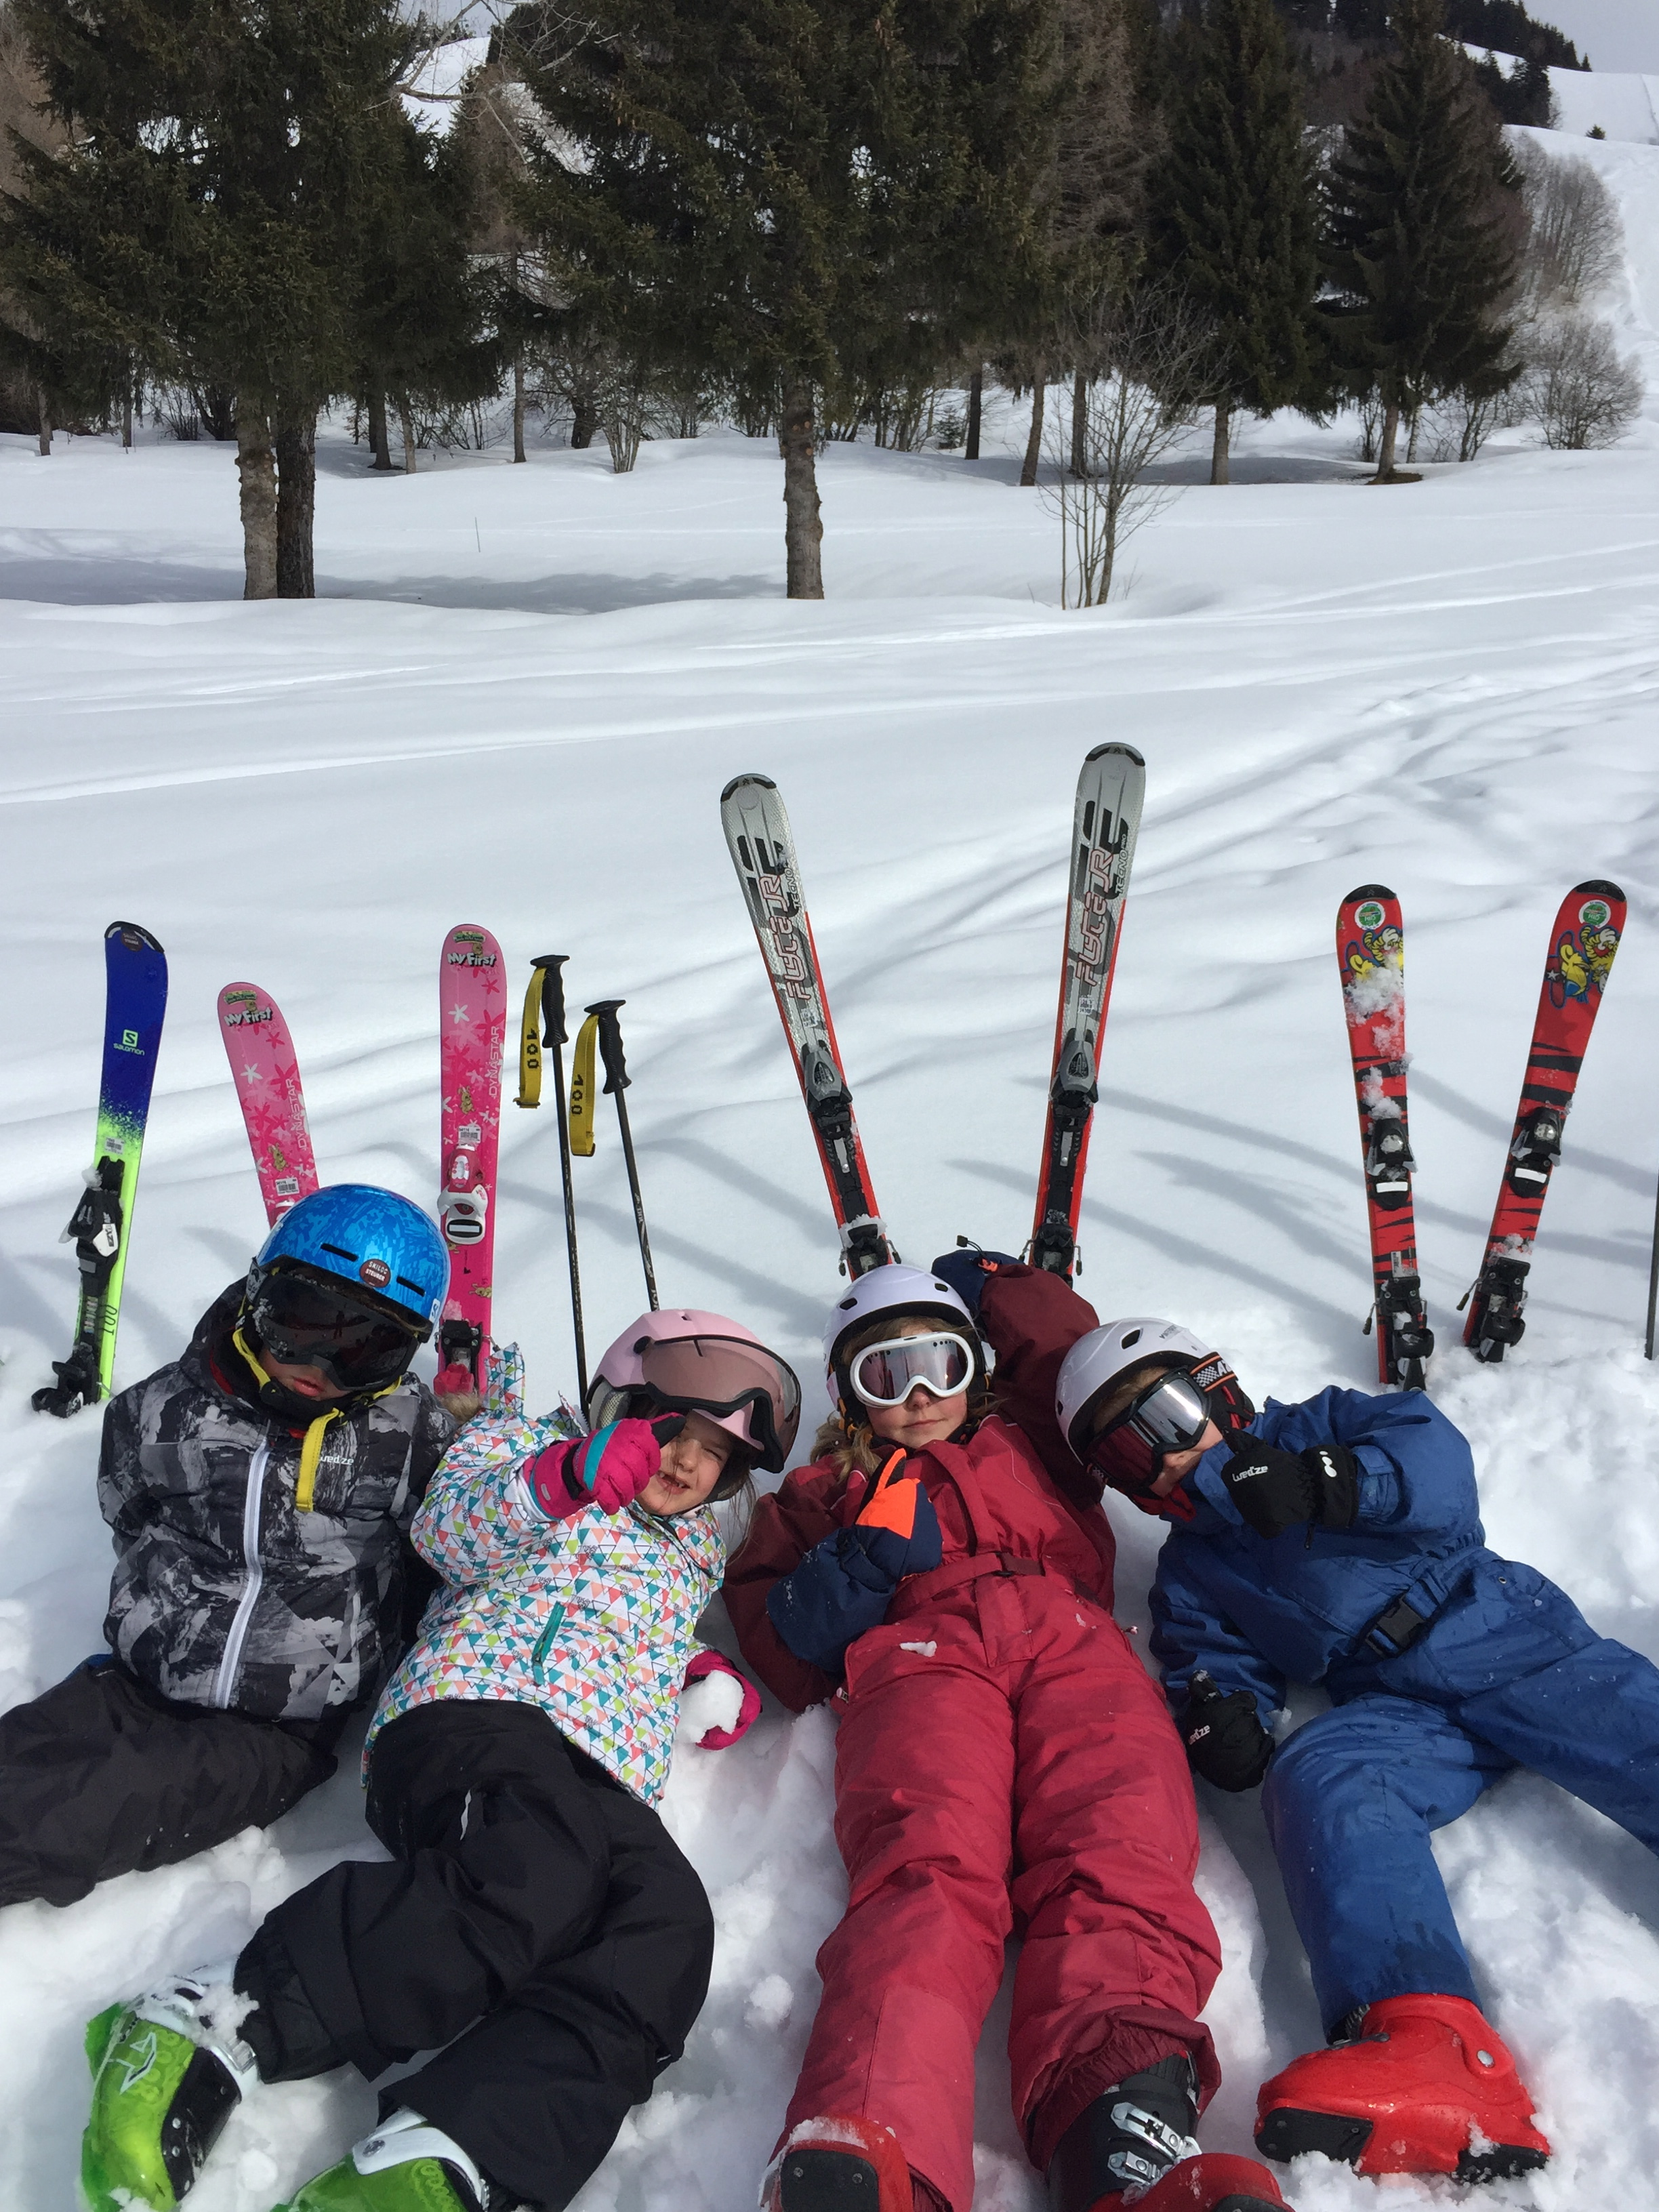 Cours collectifs ski 8 pers max/Group ski lesson 6/12 ans/13h00-15h00